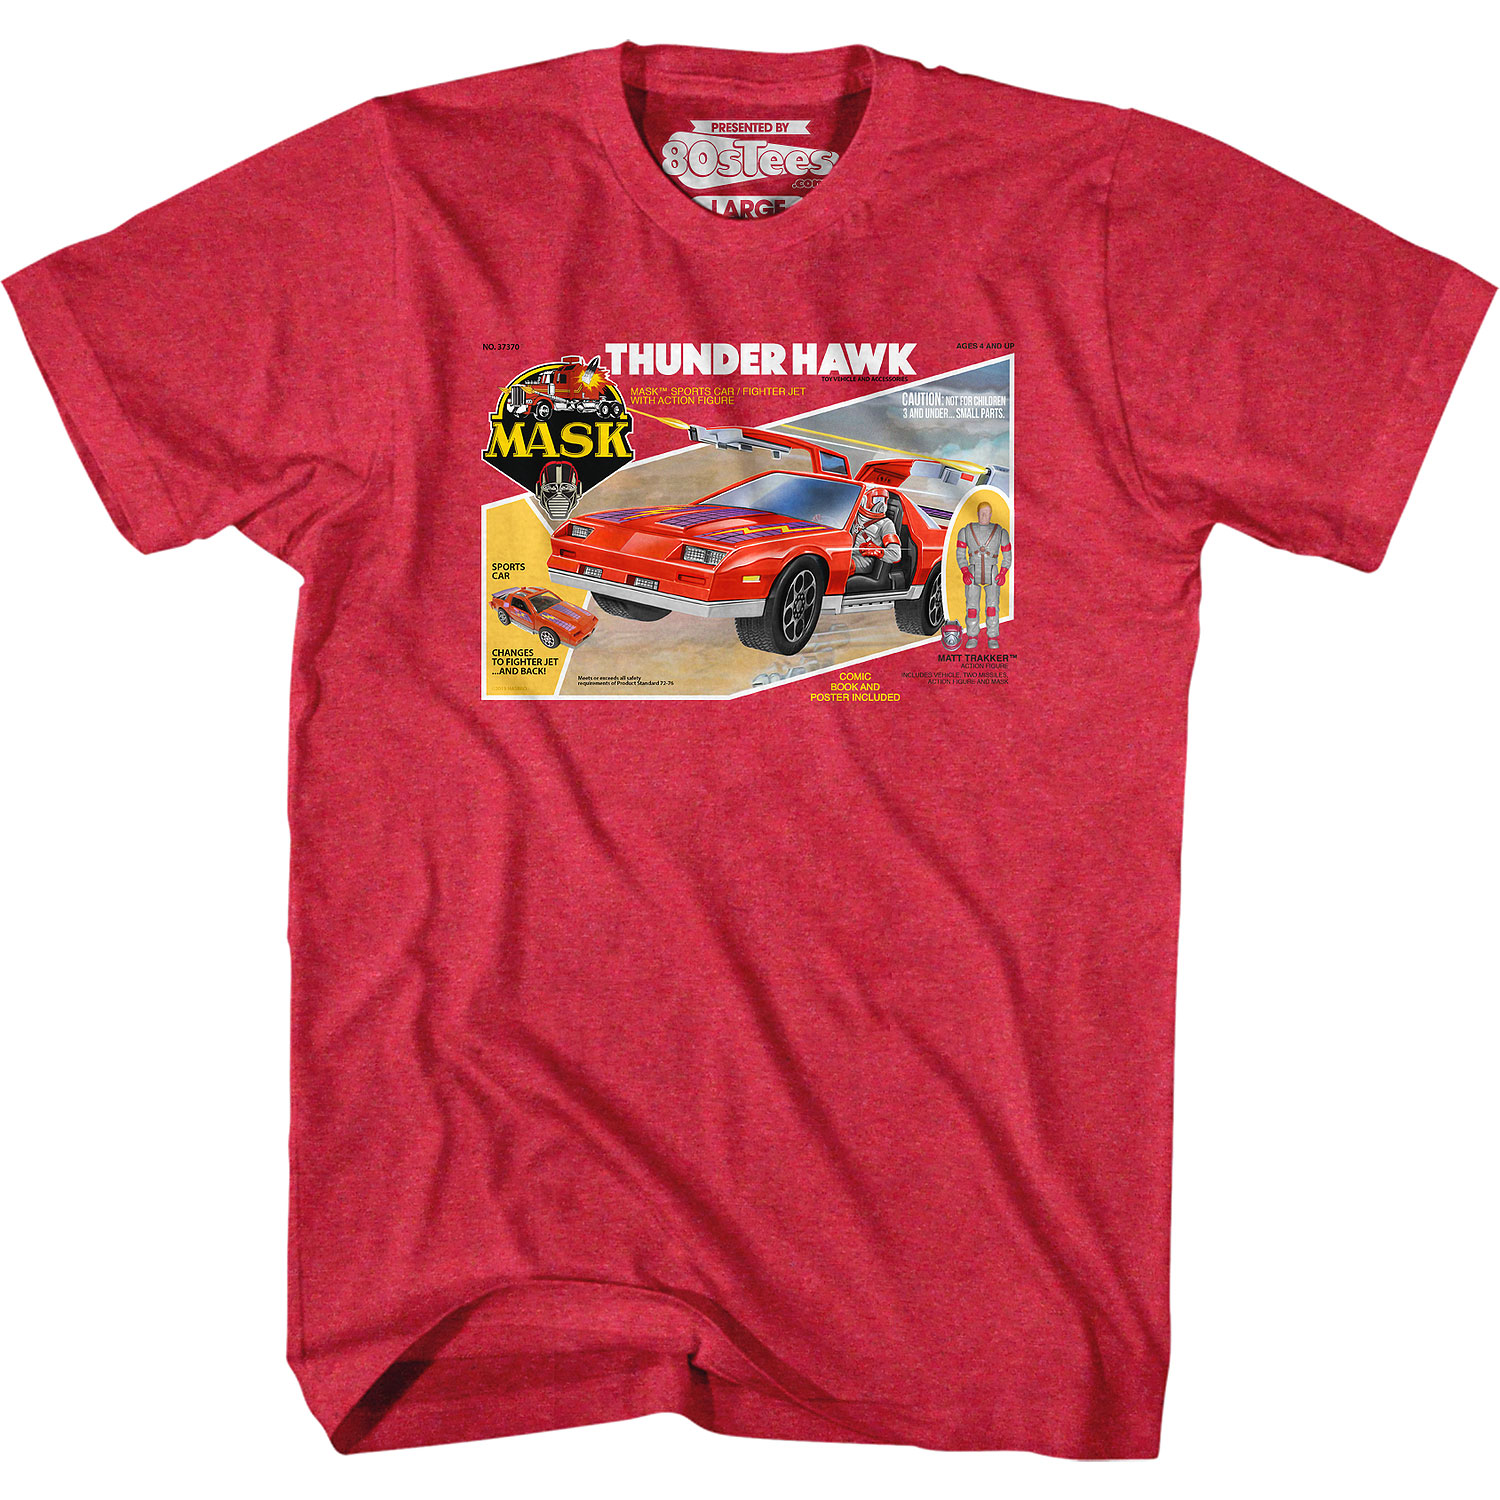 mask-toy-thunderhawk-vehicle-box-art-shirt